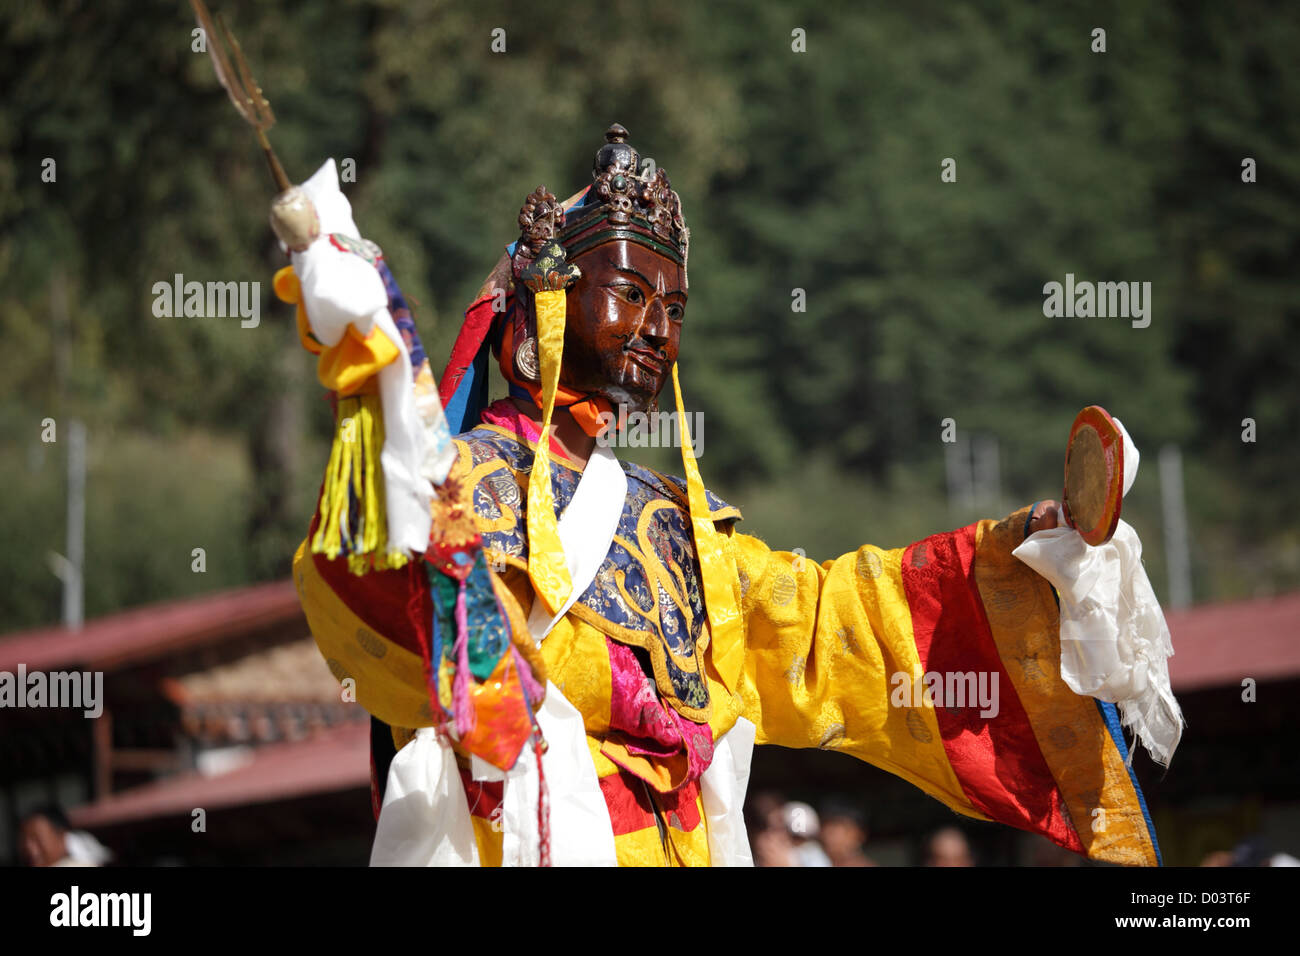 Buddhist monks dancing in traditional costumes with terrifying masks during religious festival in Bhutan. - Stock Image